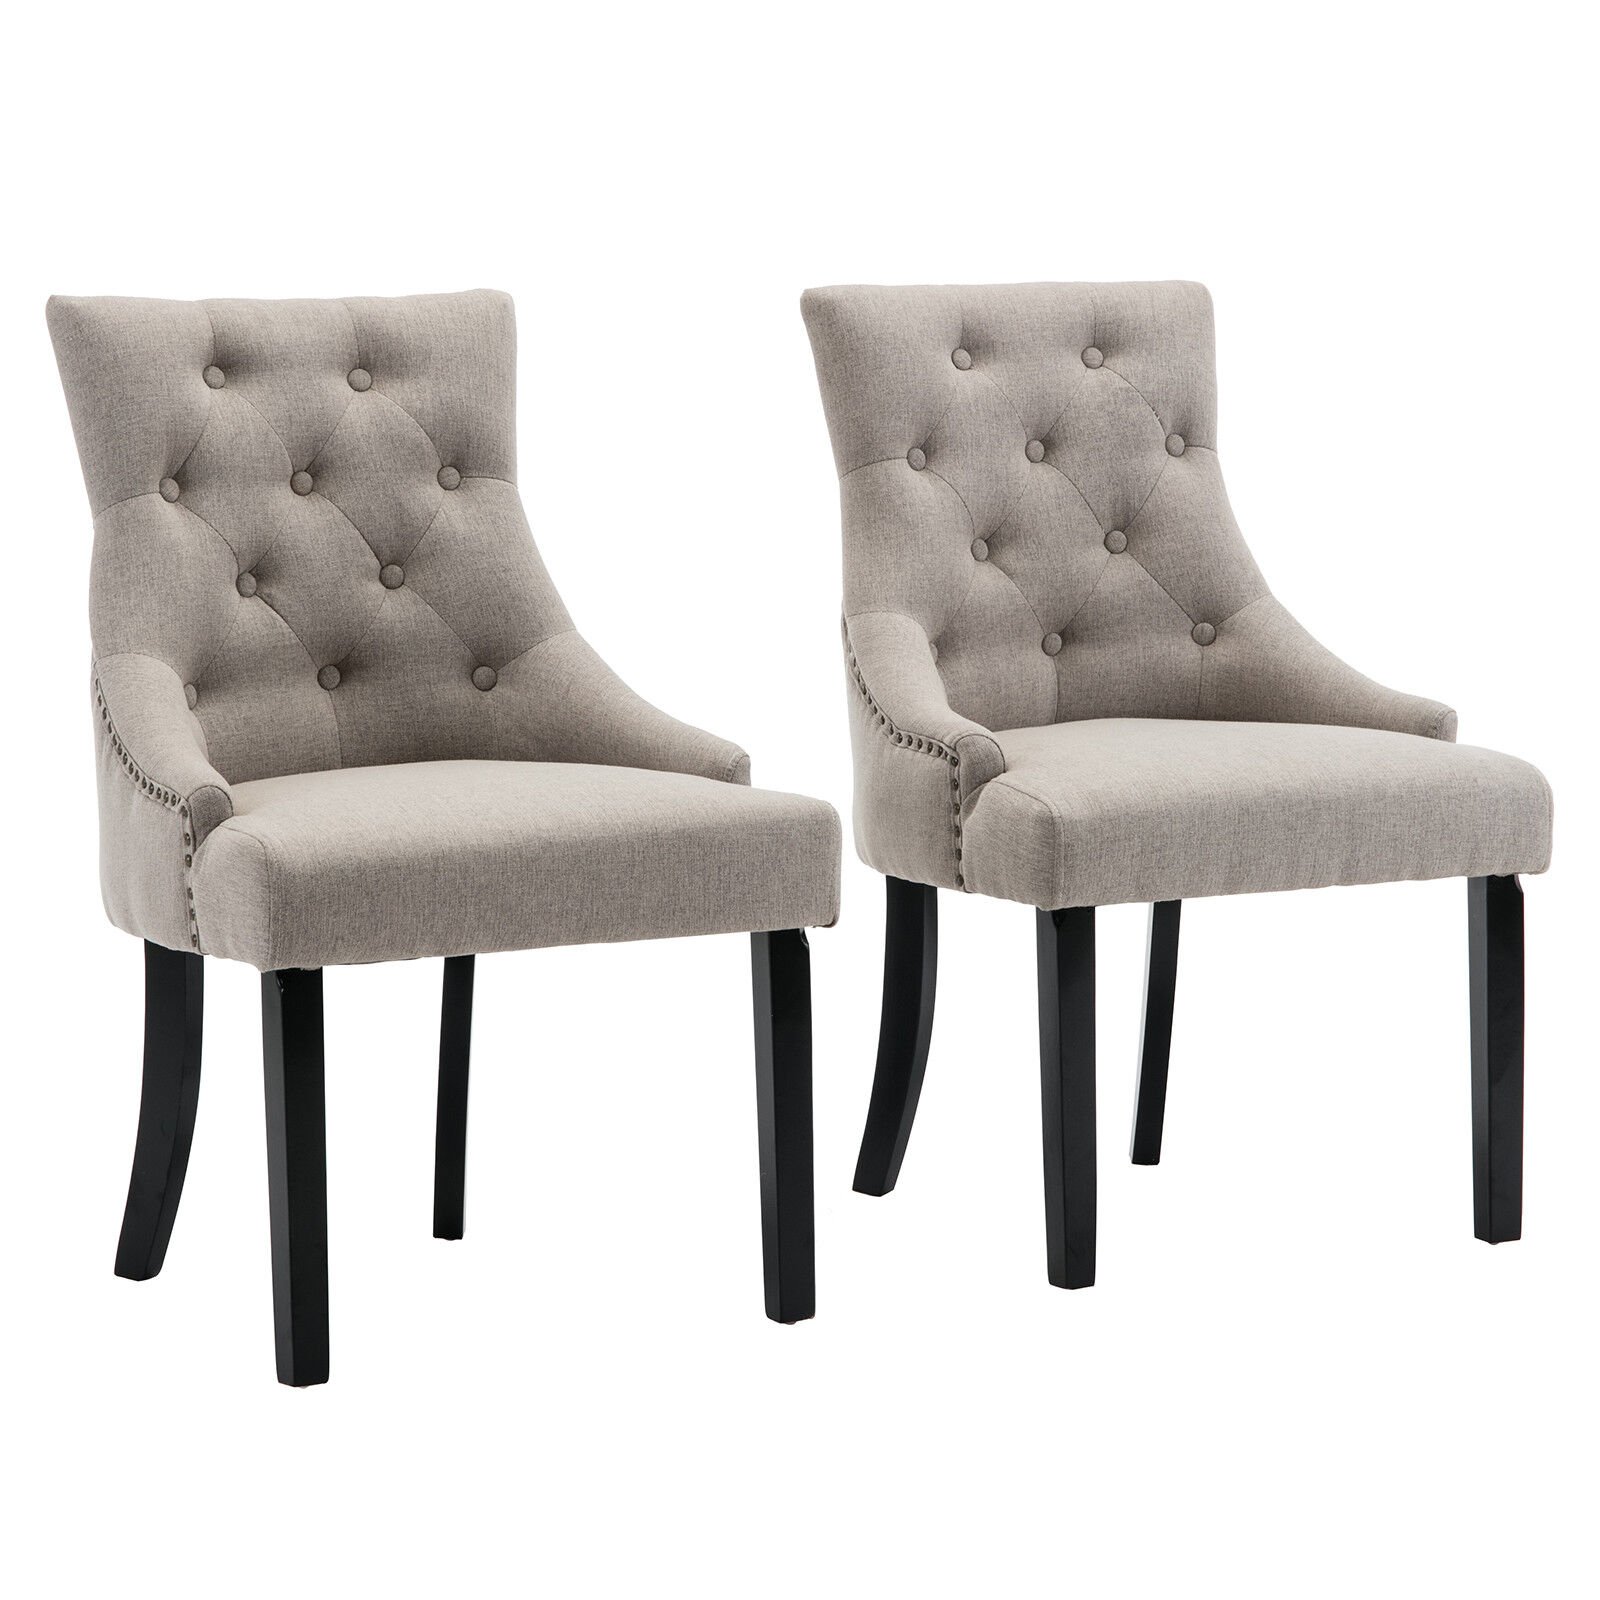 Details About Modern Set Of 2 Fabric Curved Dining Chair Tufted Upholstered Button W Backrest